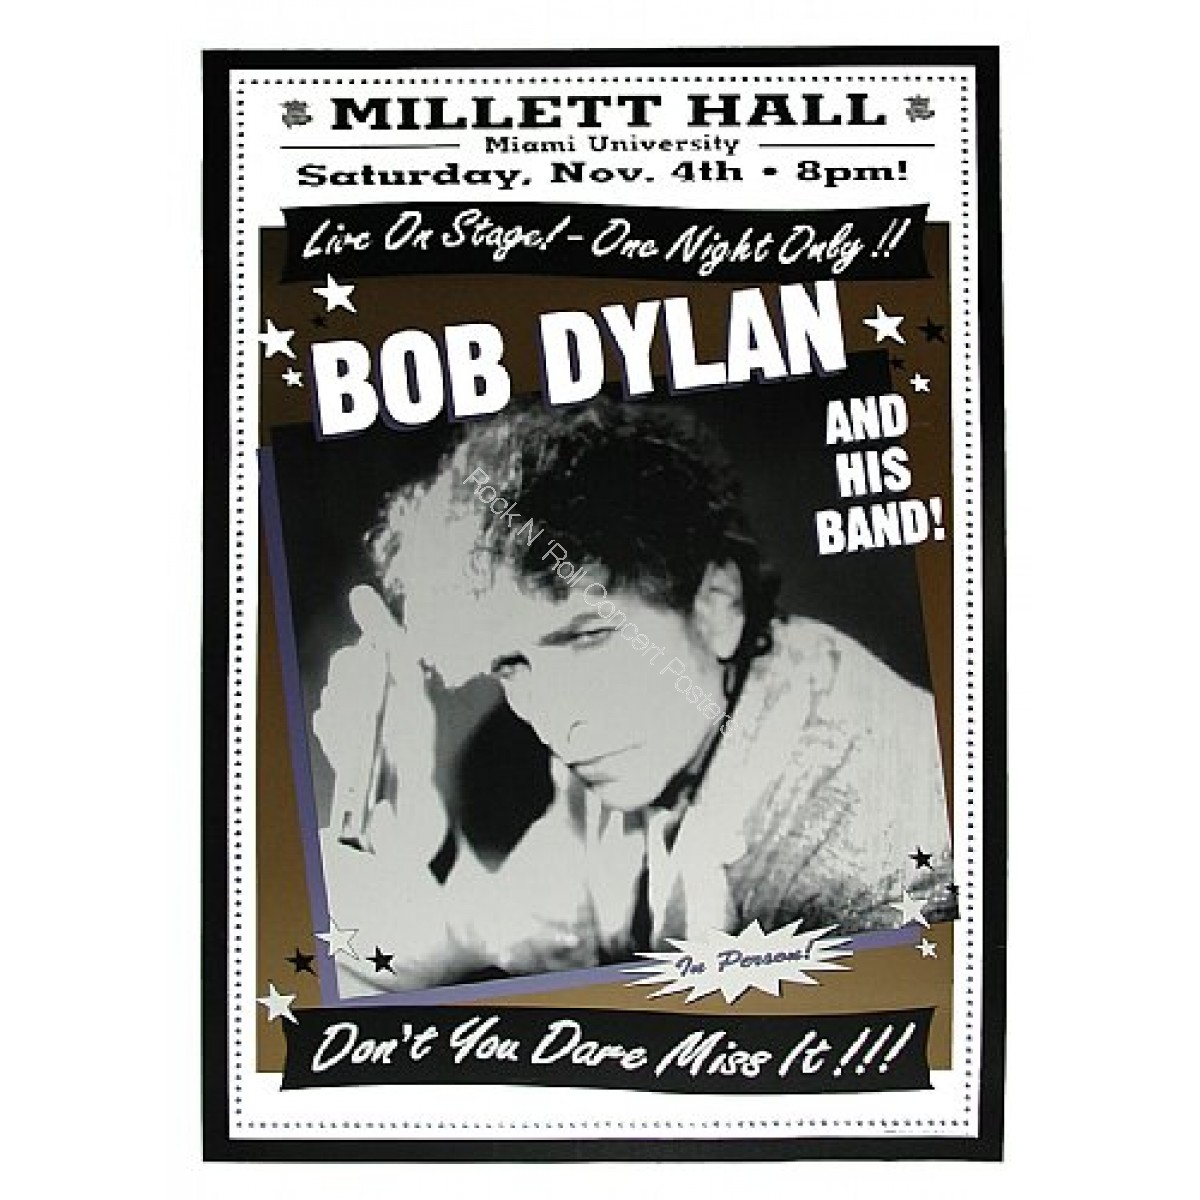 Bob Dylan & His Band @ Millett Hall, Miami U.